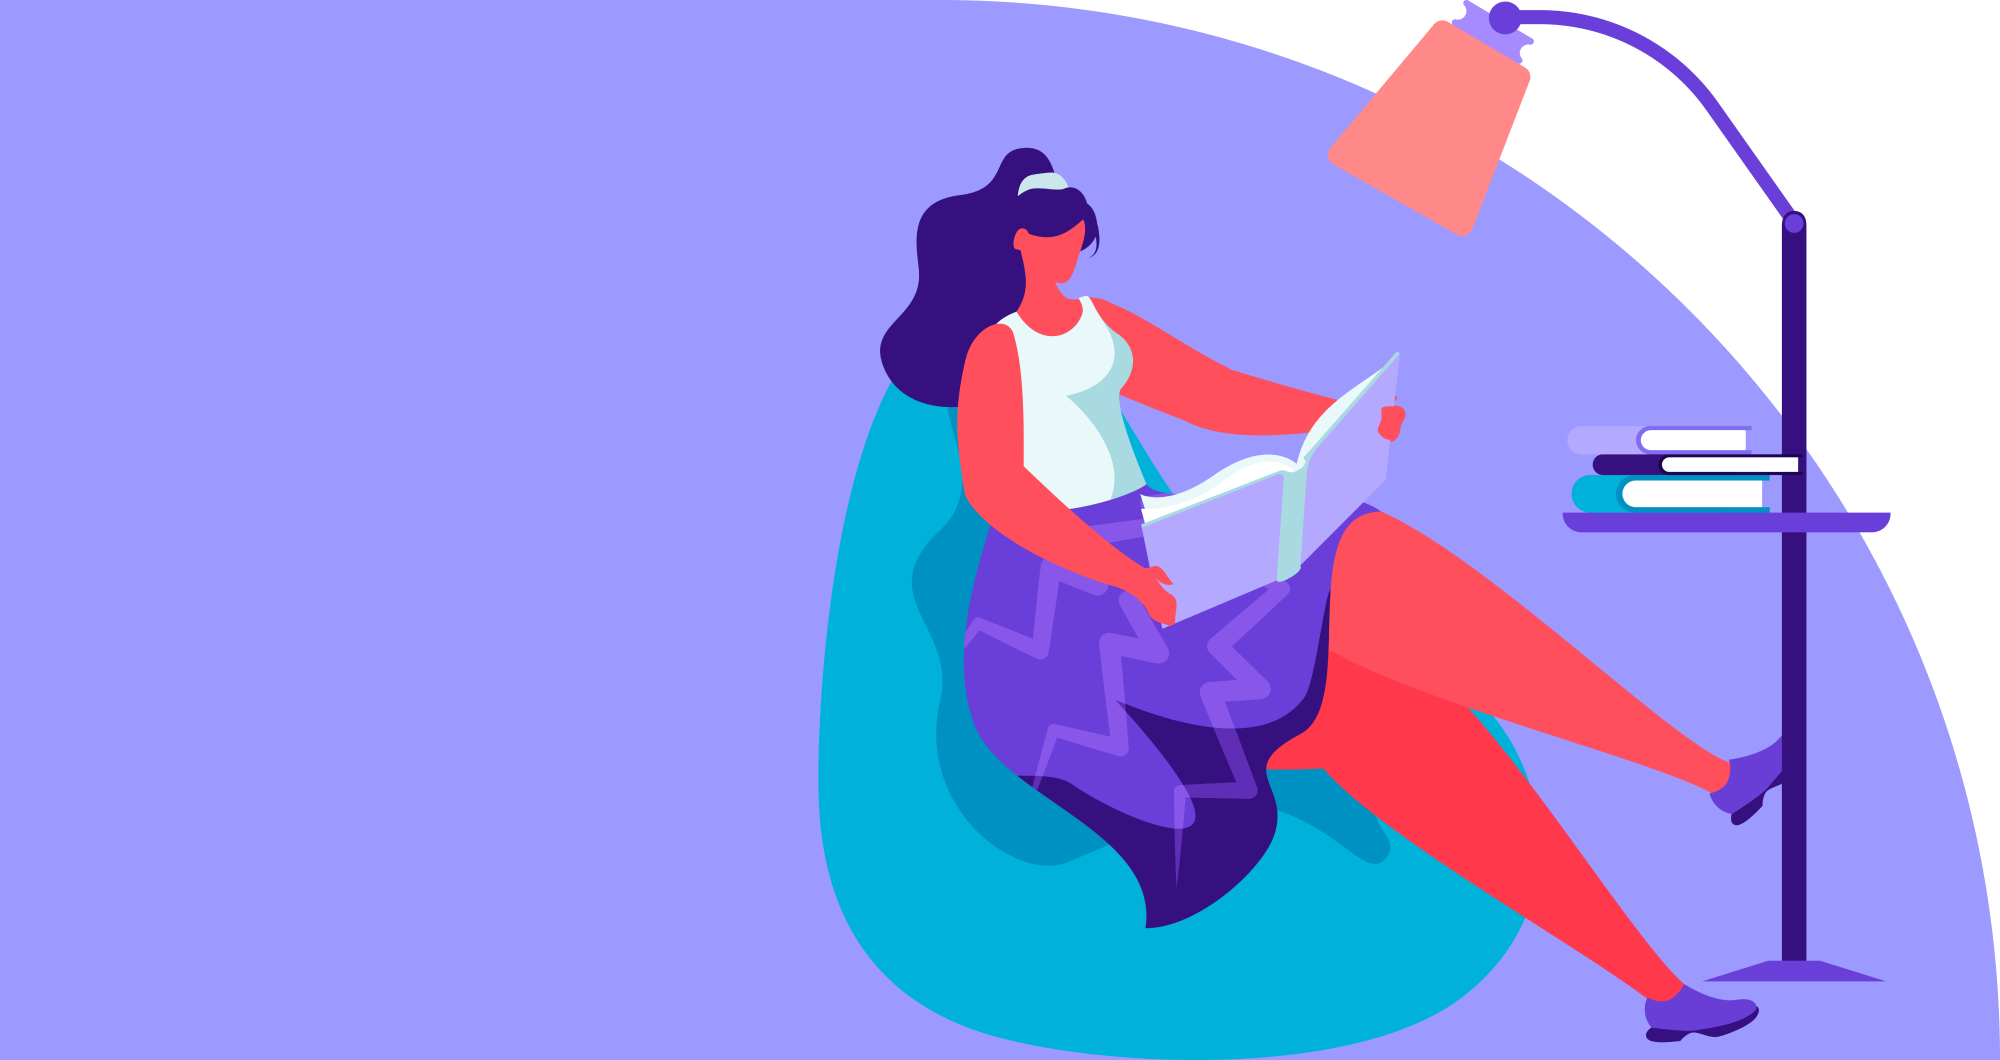 Cartoon woman sitting and reading a book